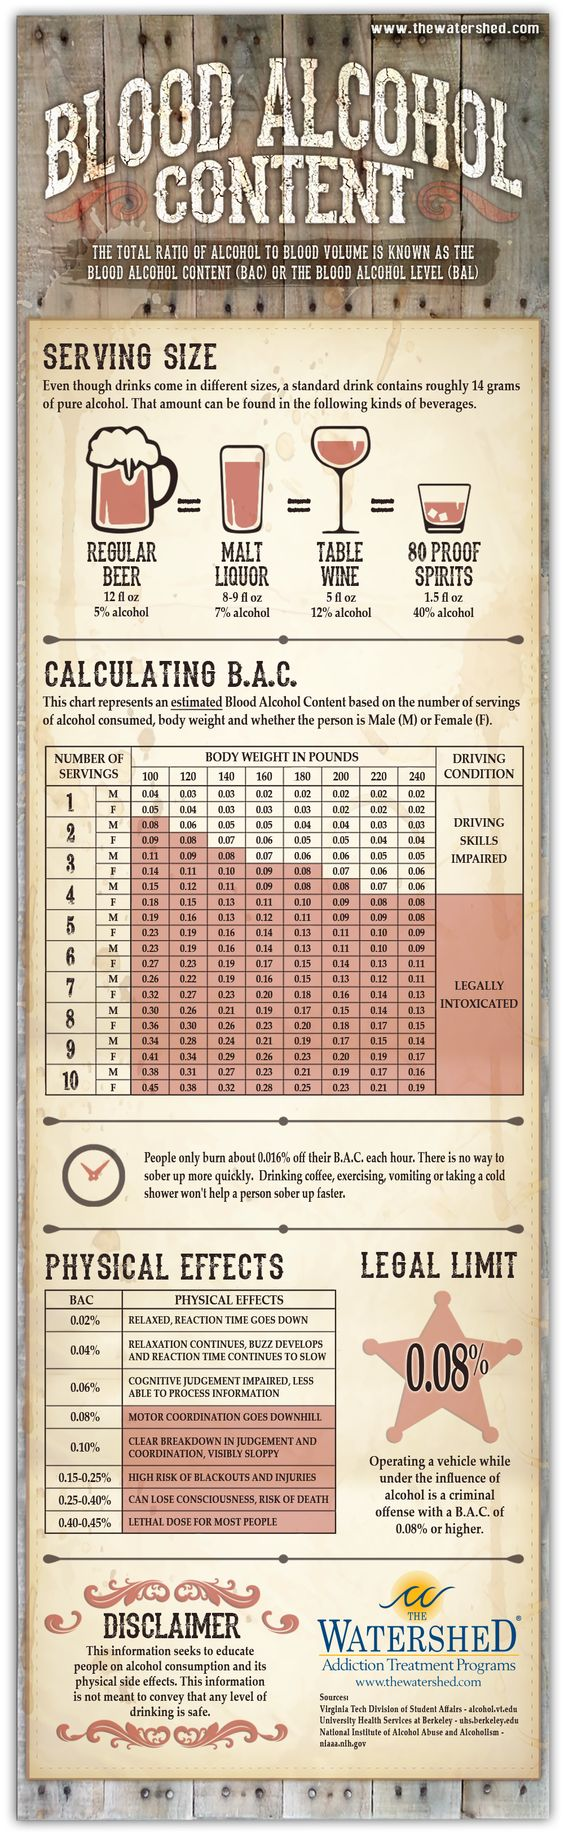 Understanding blood alcohol content and how it affects the body.